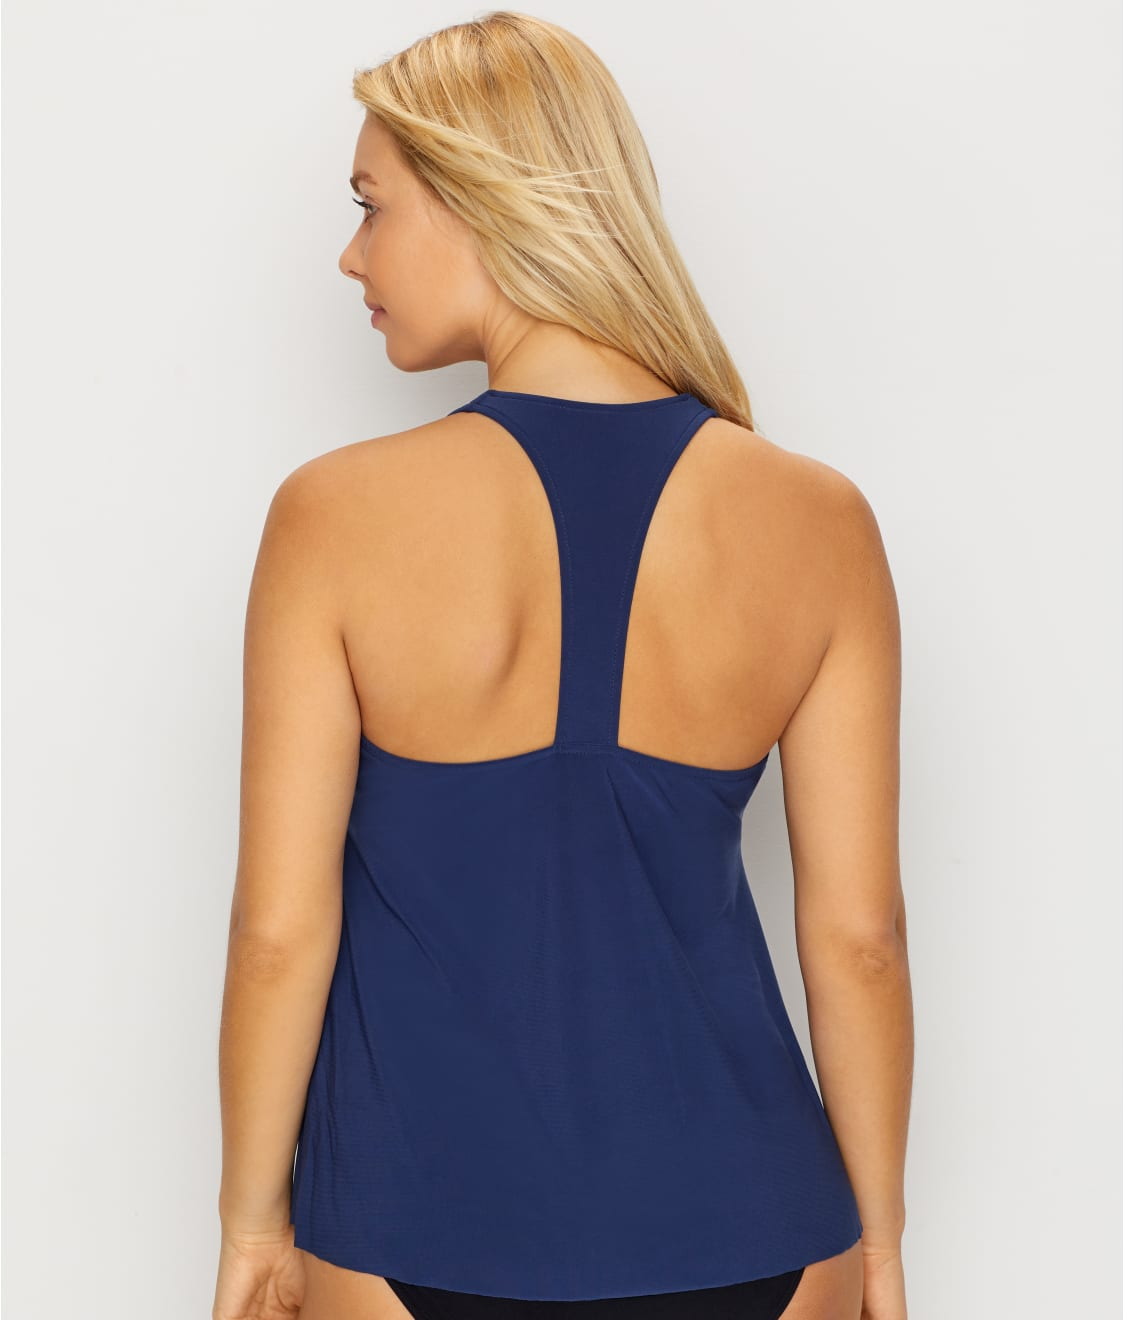 b920315088 Magicsuit Solid Taylor Underwire Tankini Top DD-Cups | Bare ...